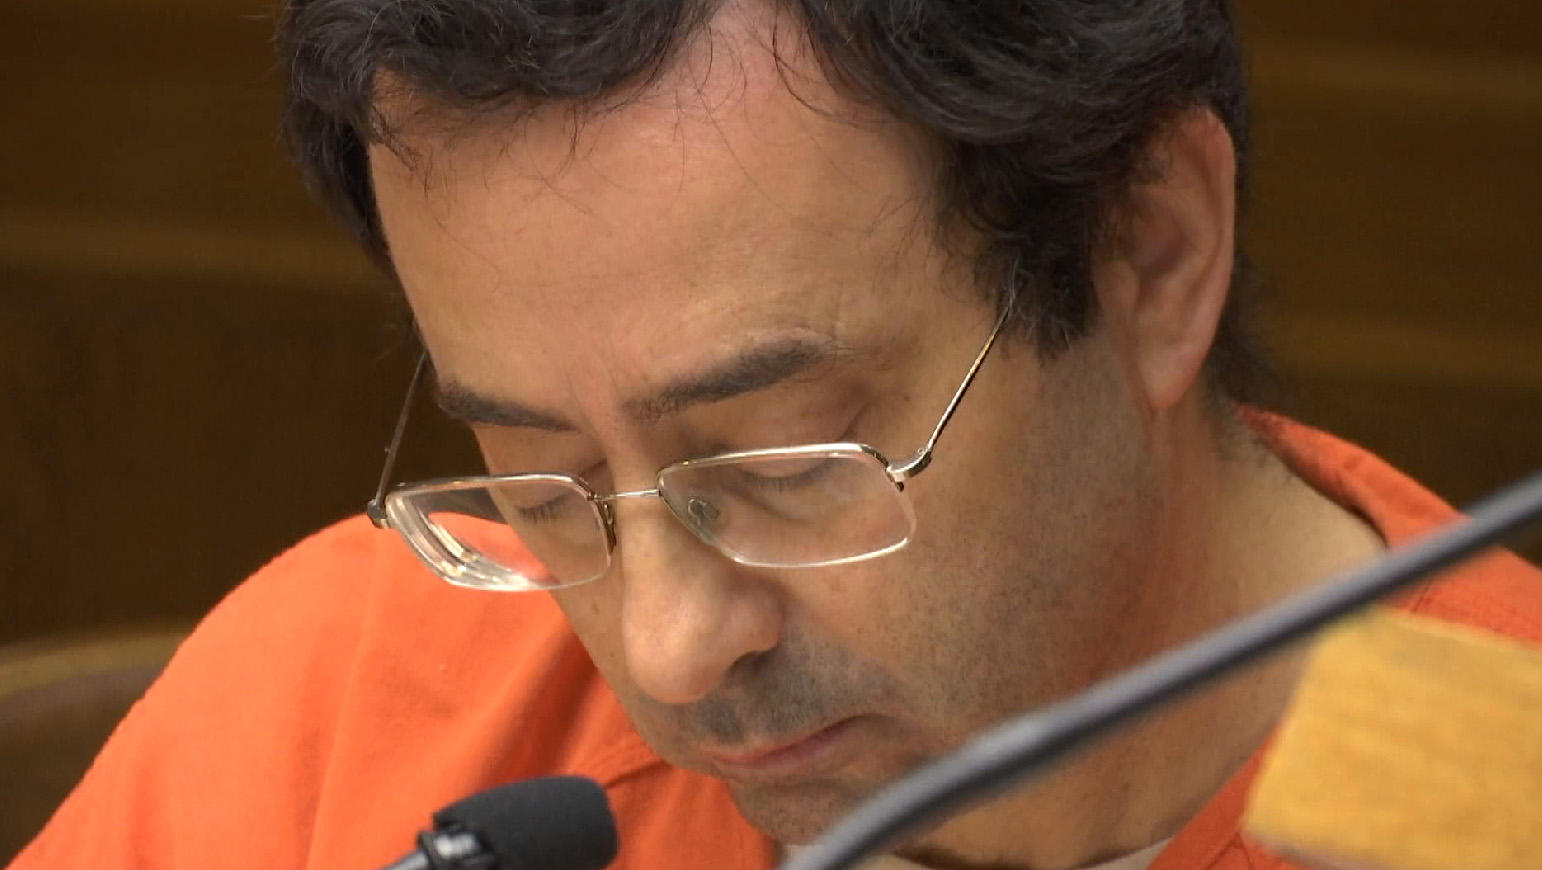 action drone usa with Larry Nassar Ex Usa Gymnastics Doctor Sexual Assault Enters Plea on Ridgeline Bp 250 Aw as well Drone Strike Kills 8 In Datta Khel as well Love Womens Indoor Volleyball as well Home theater sound tower system together with 55 class smart aquos hd 1080p led hdtv with wi fi.